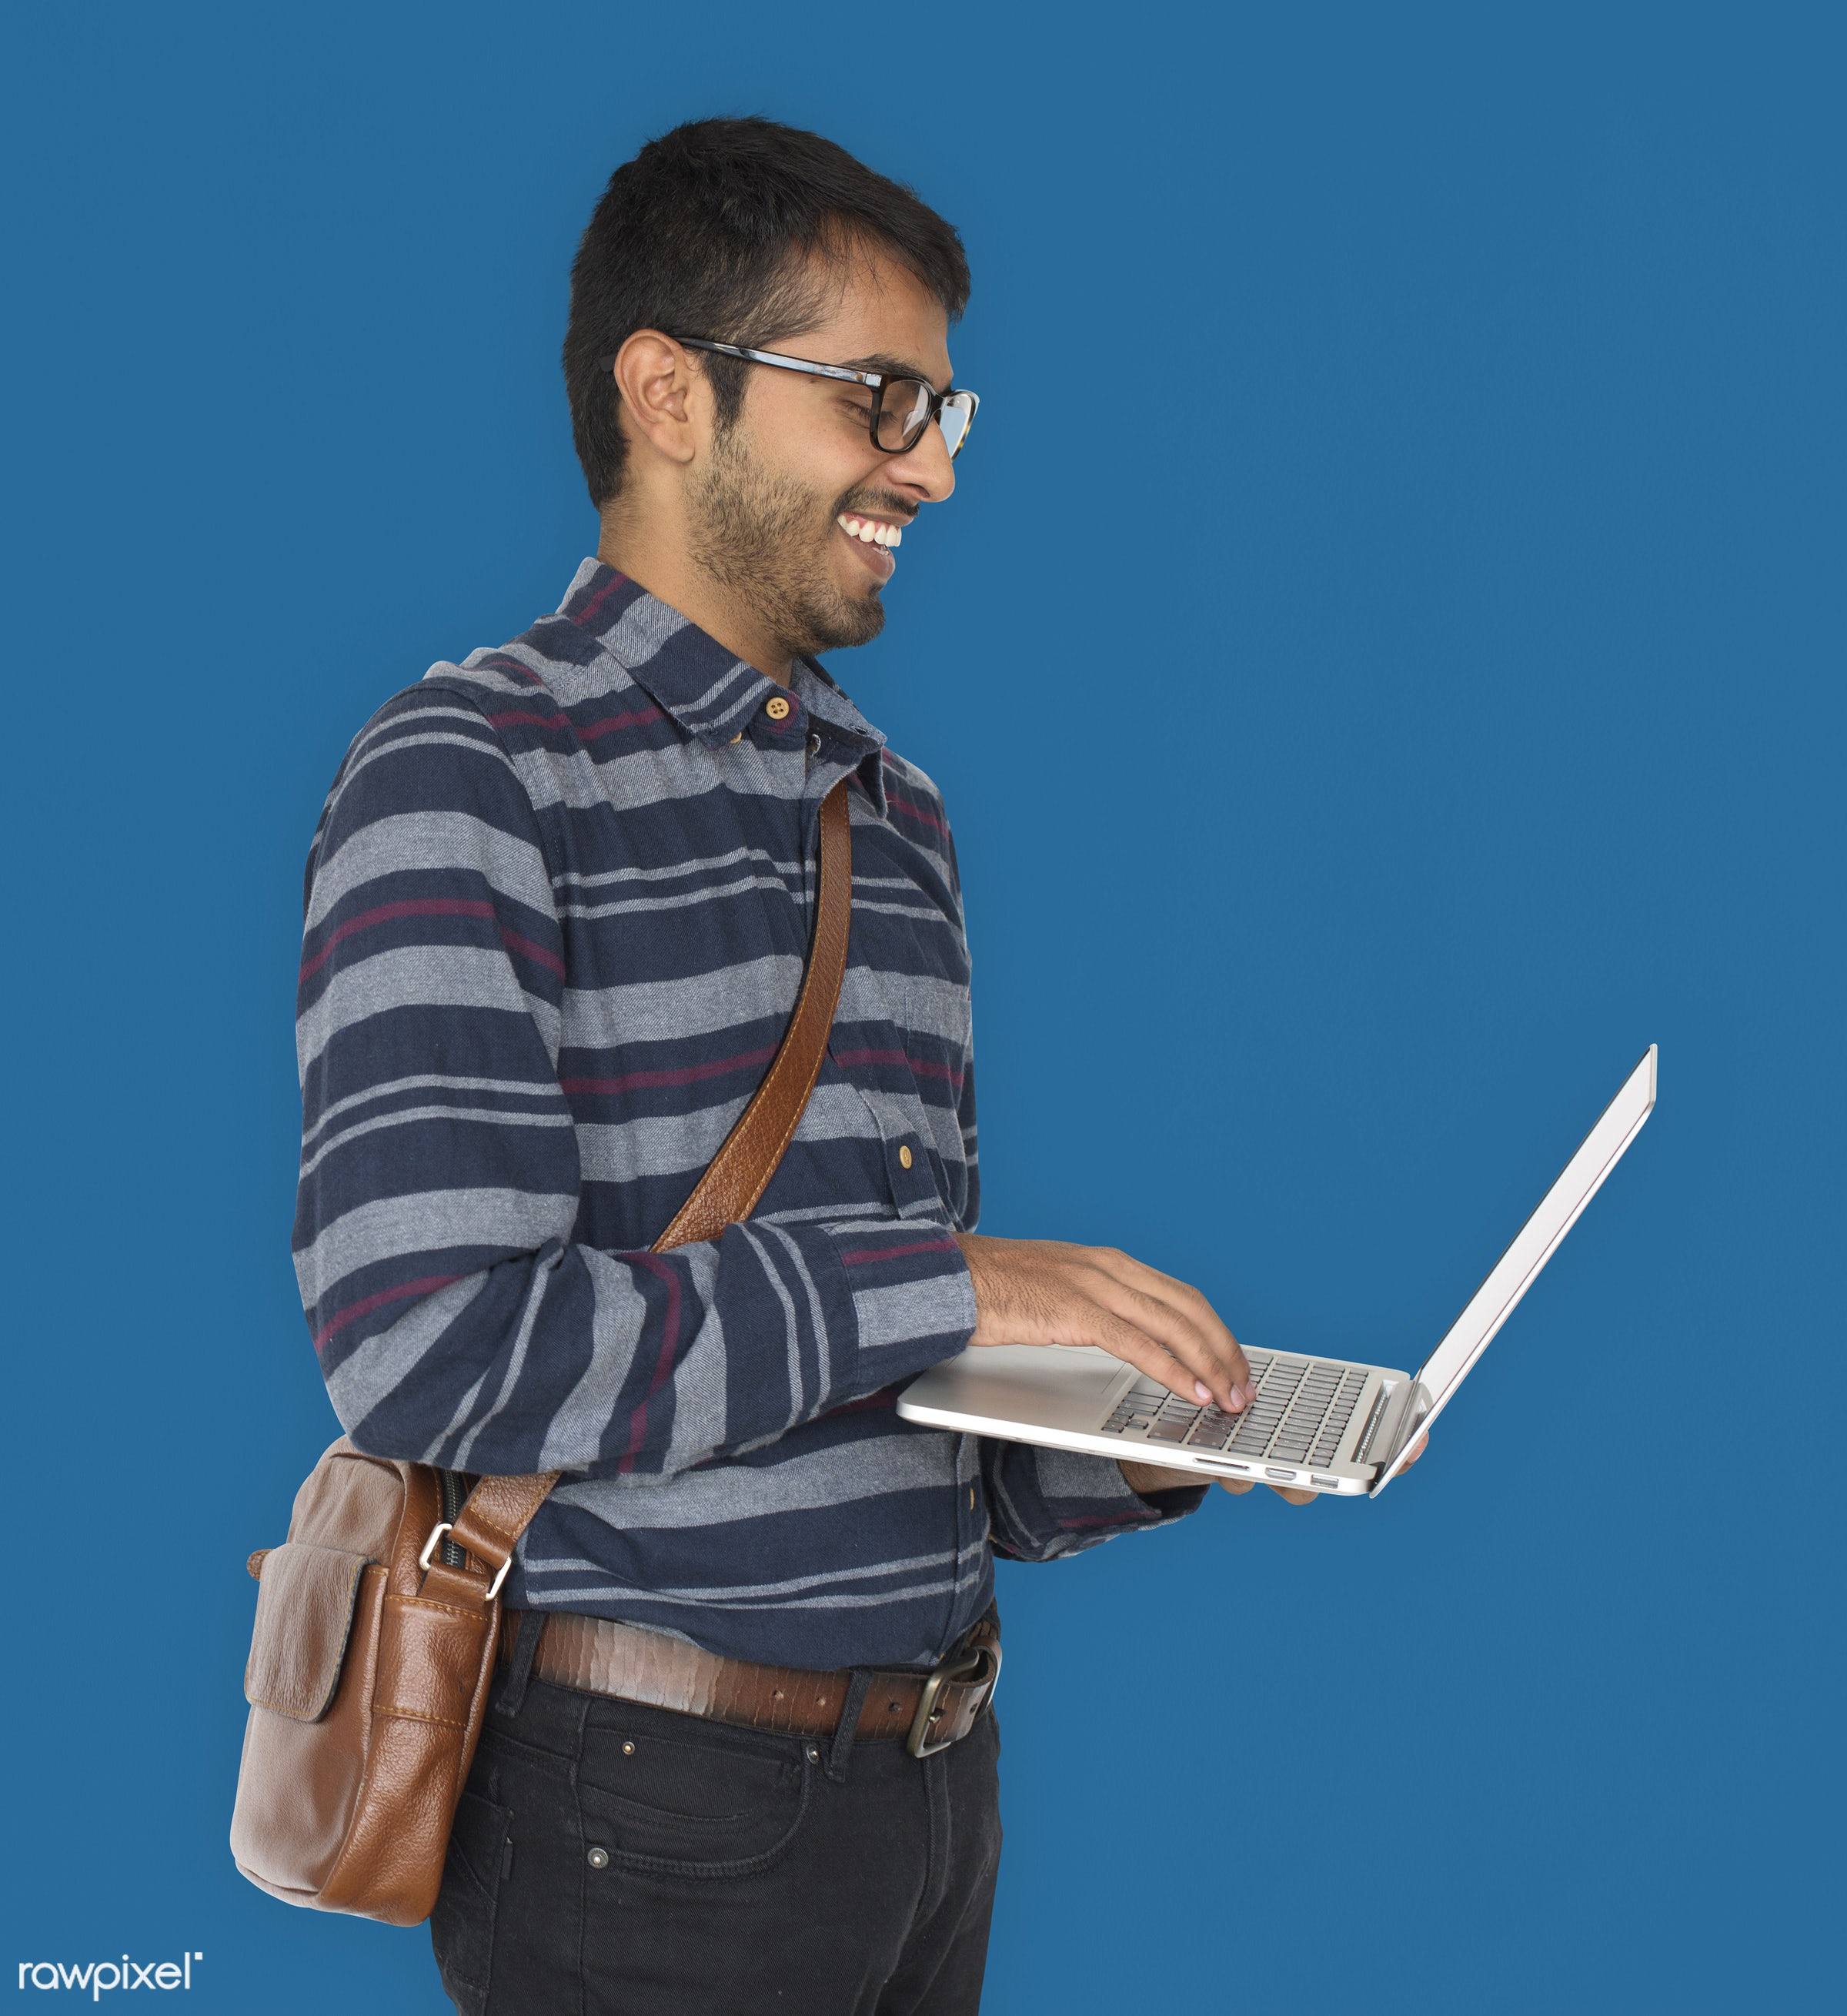 studio, expression, person, technology, holding, vibrant, people, asian, lifestyle, laptop, positive, smile, cheerful,...